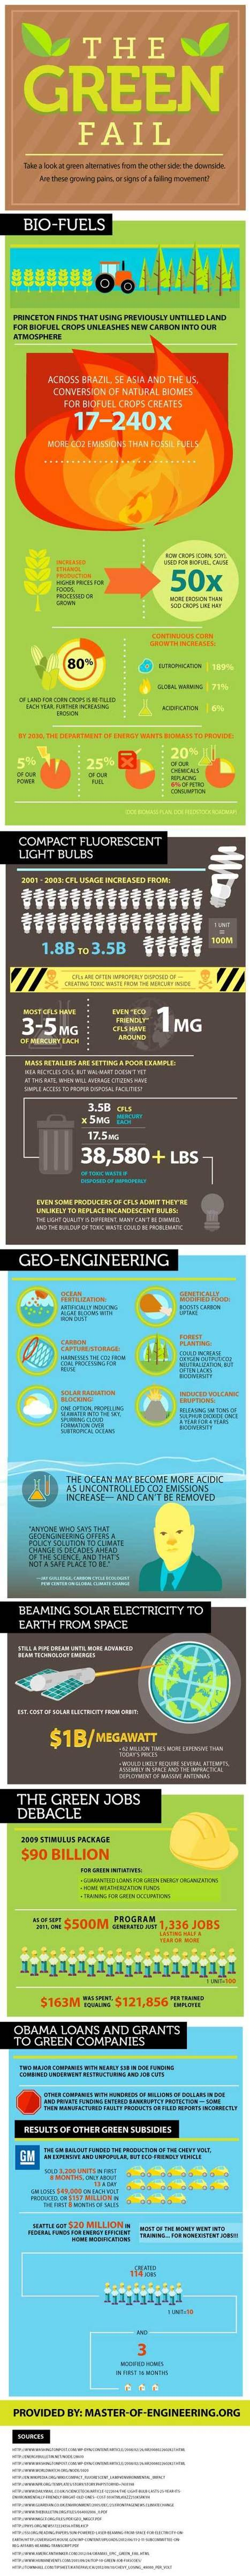 The Green Fail Infographic | Energy Hack | Towards A Sustainable Planet: Priorities | Scoop.it